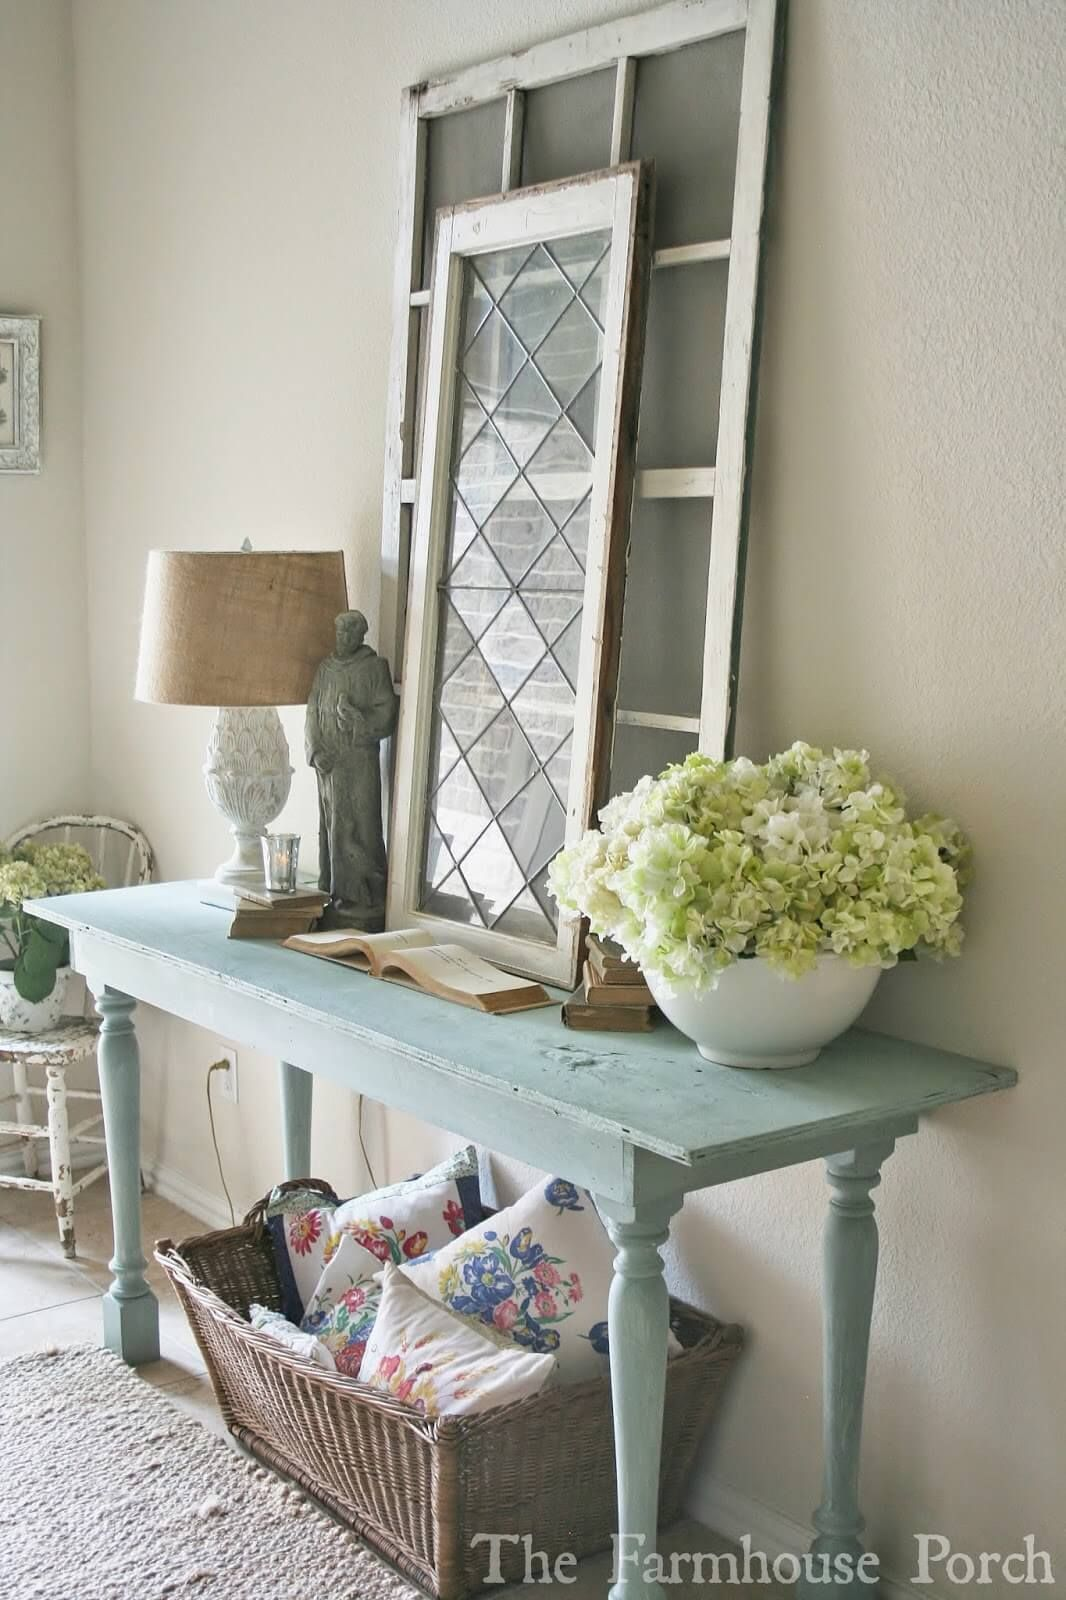 12 Chic Console Table Decorating Ideas To Freshen Up Your Decor Console Table Decorating Porch Wall Decor Entryway Decor